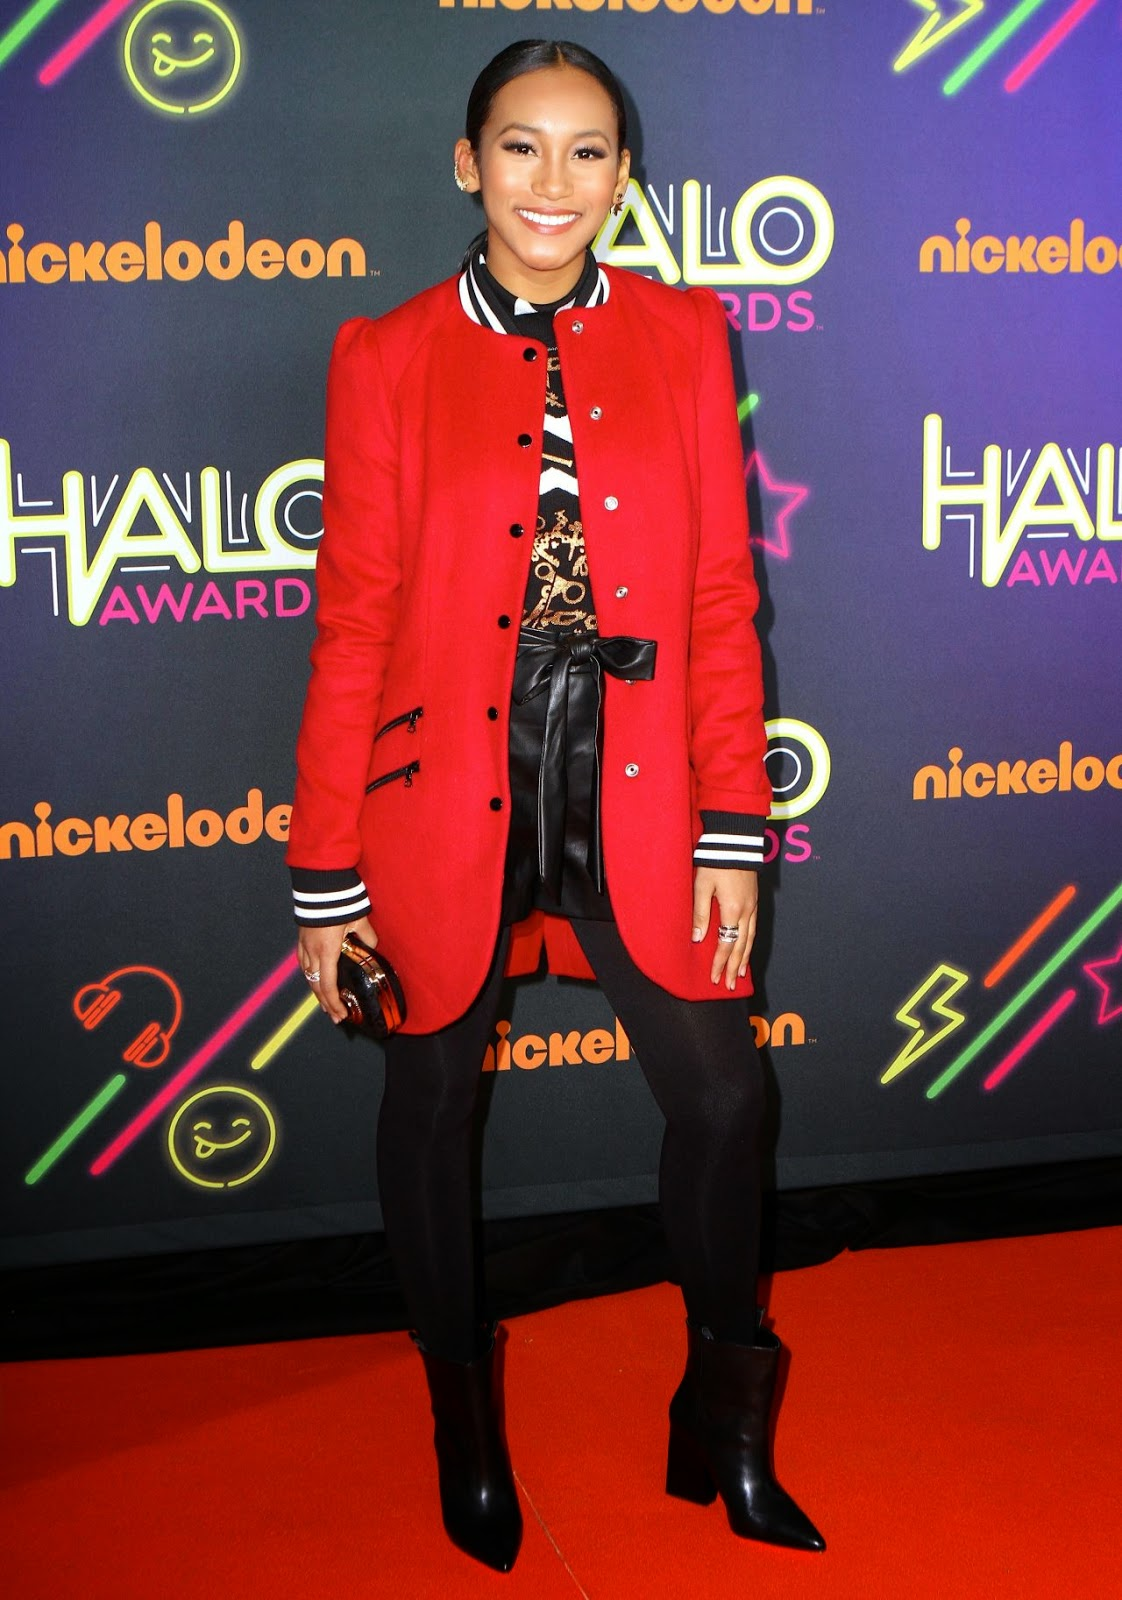 Nickelodeon Halo Awards in New York City